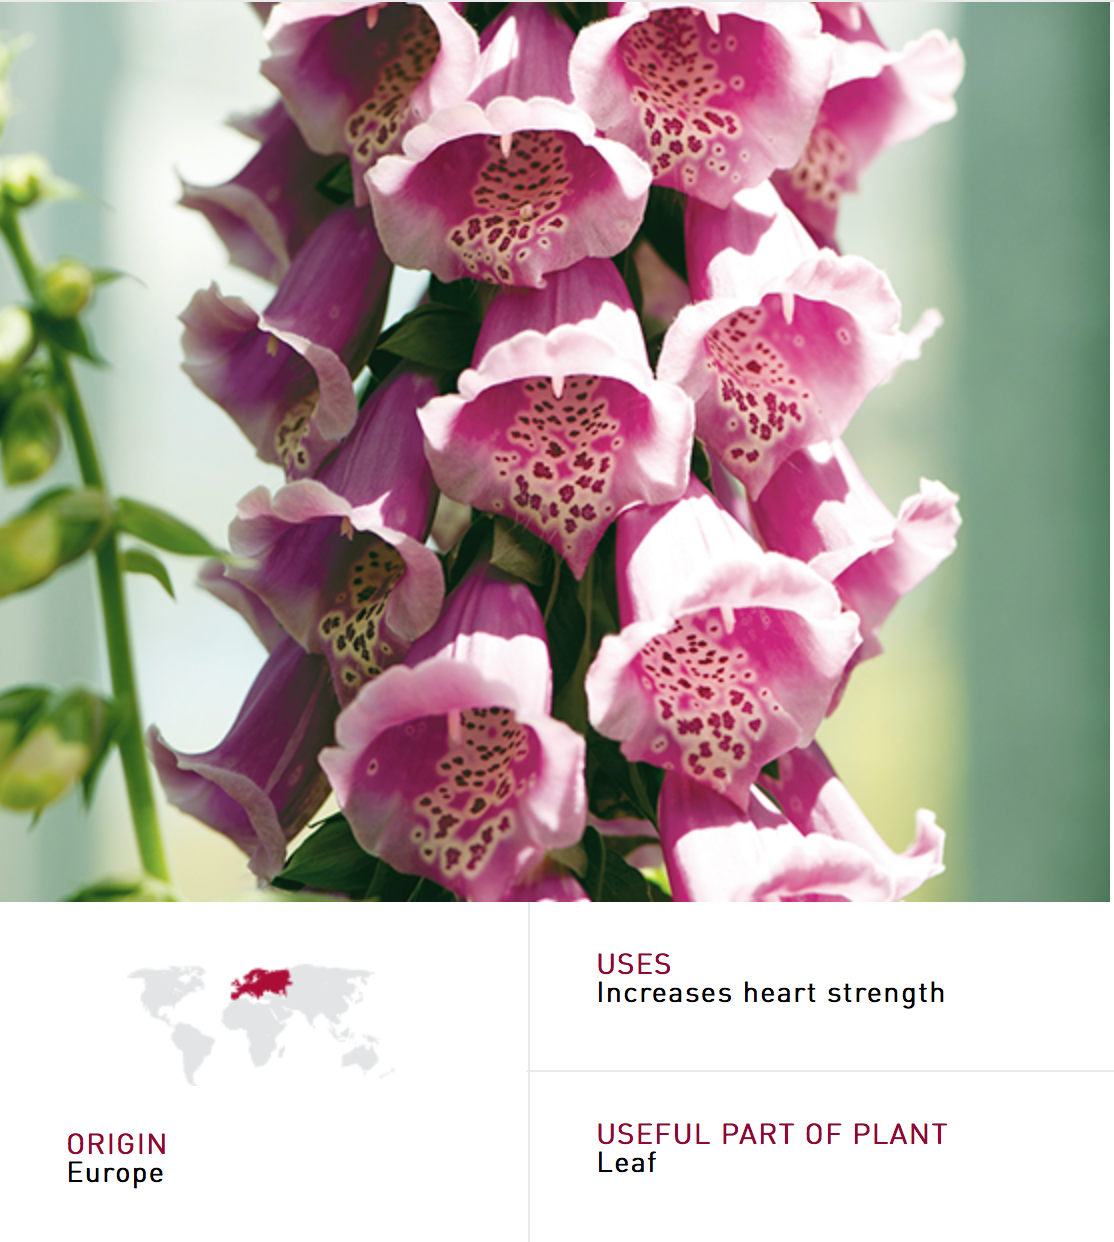 Foxglove digitalis purpurea is poisonous it was first used as a